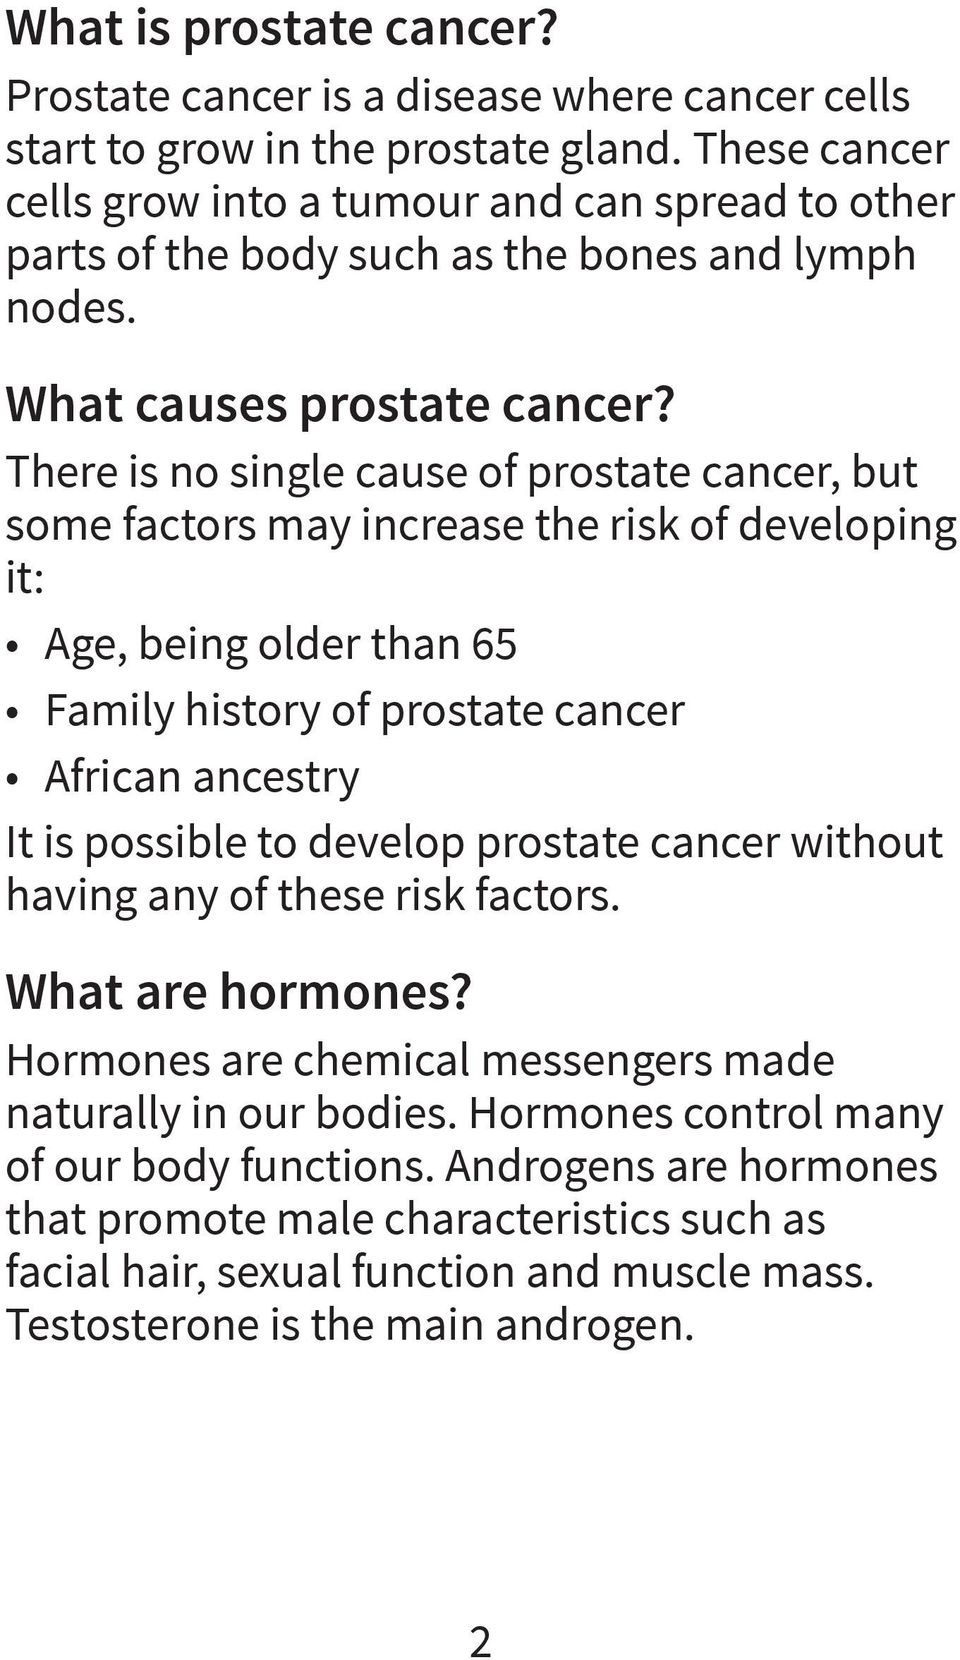 There is no single cause of prostate cancer, but some factors may increase the risk of developing it: Age, being older than 65 Family history of prostate cancer African ancestry It is possible to